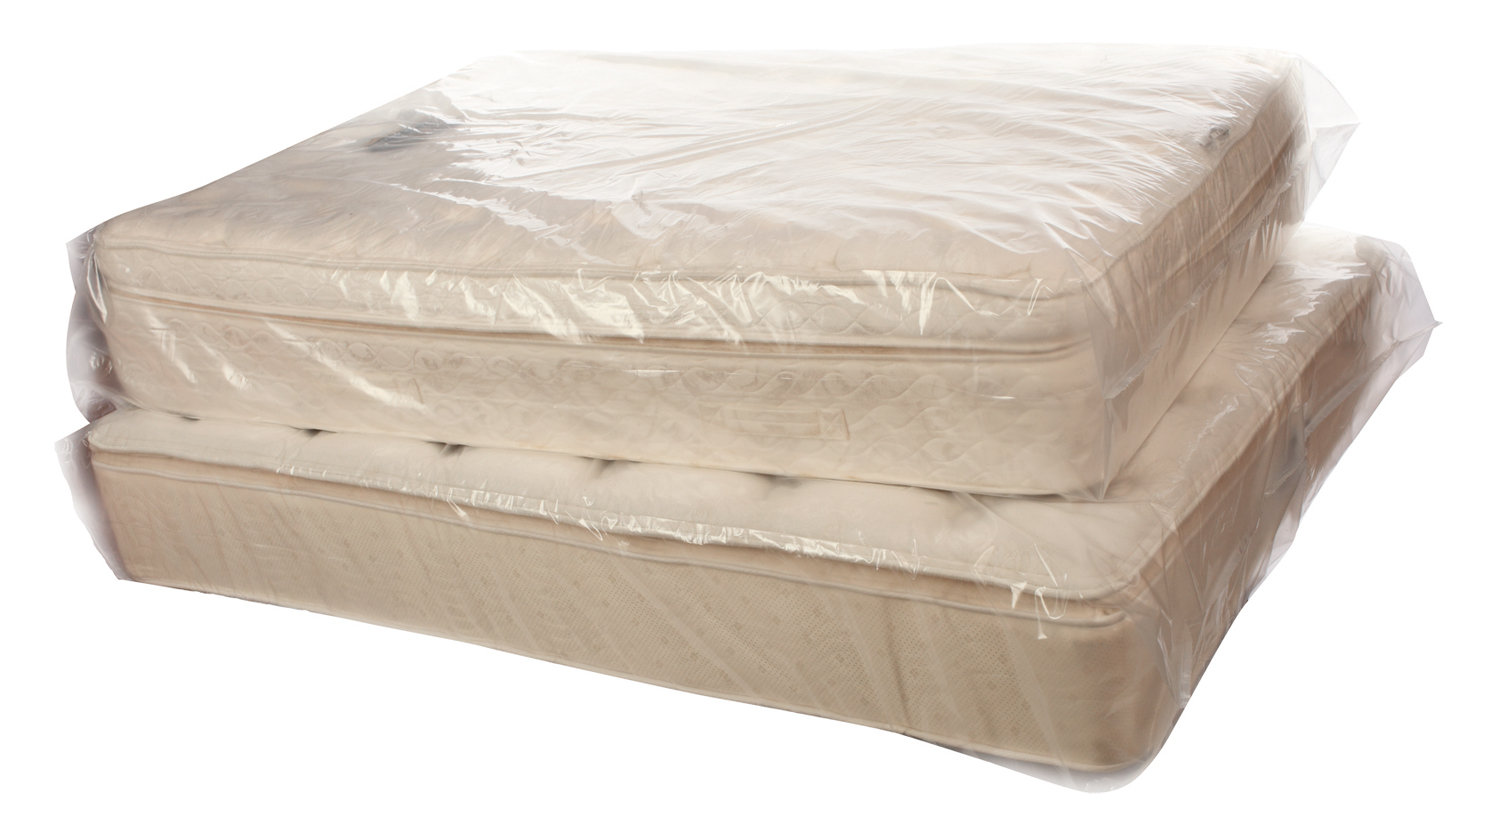 covers mattress cover waterproof